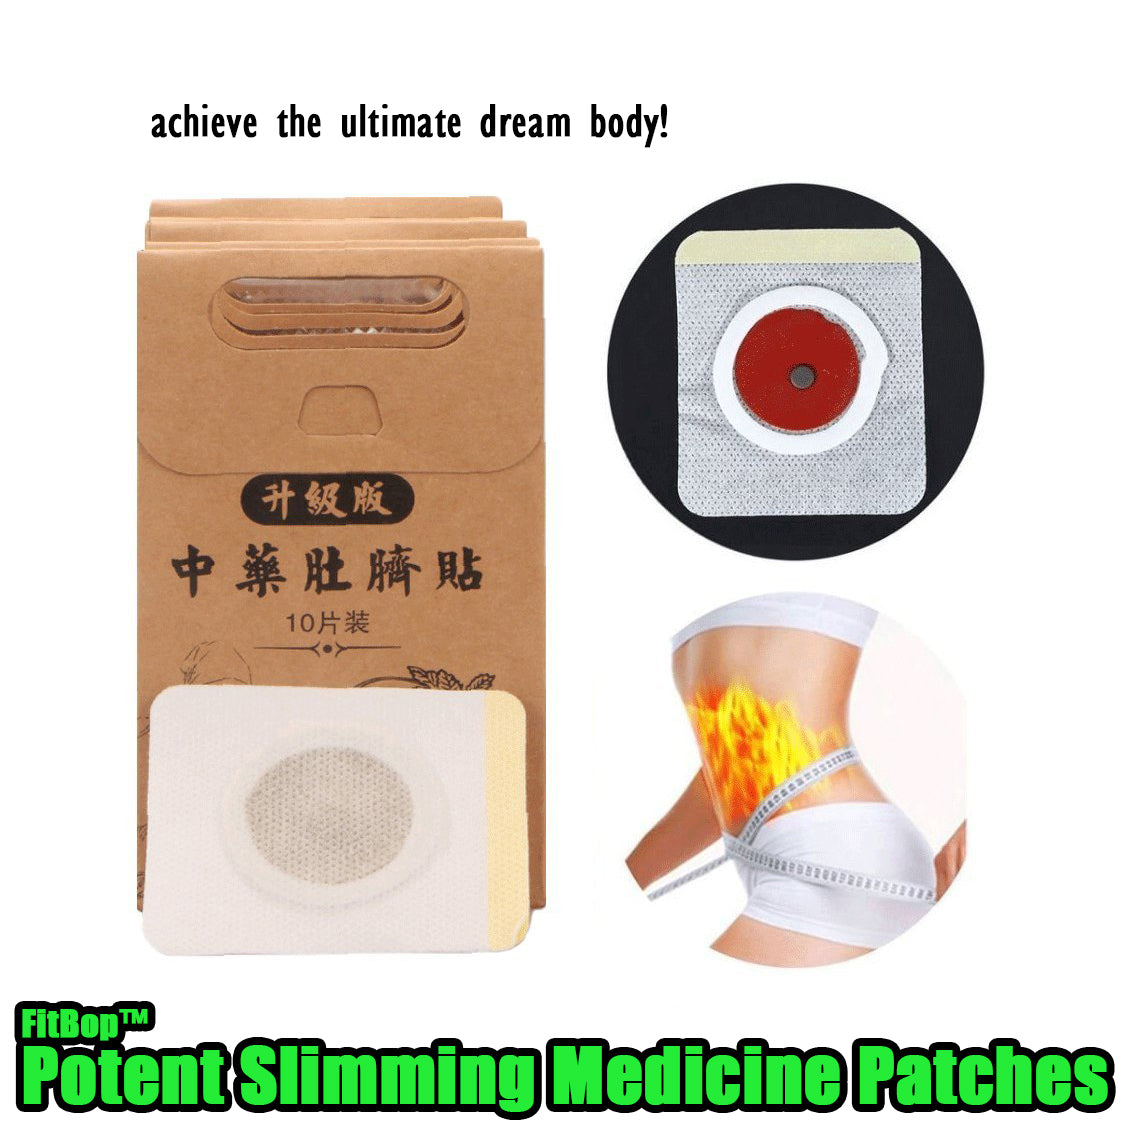 FitBop™ Potent Slimming Medicine Patches(10pcs)